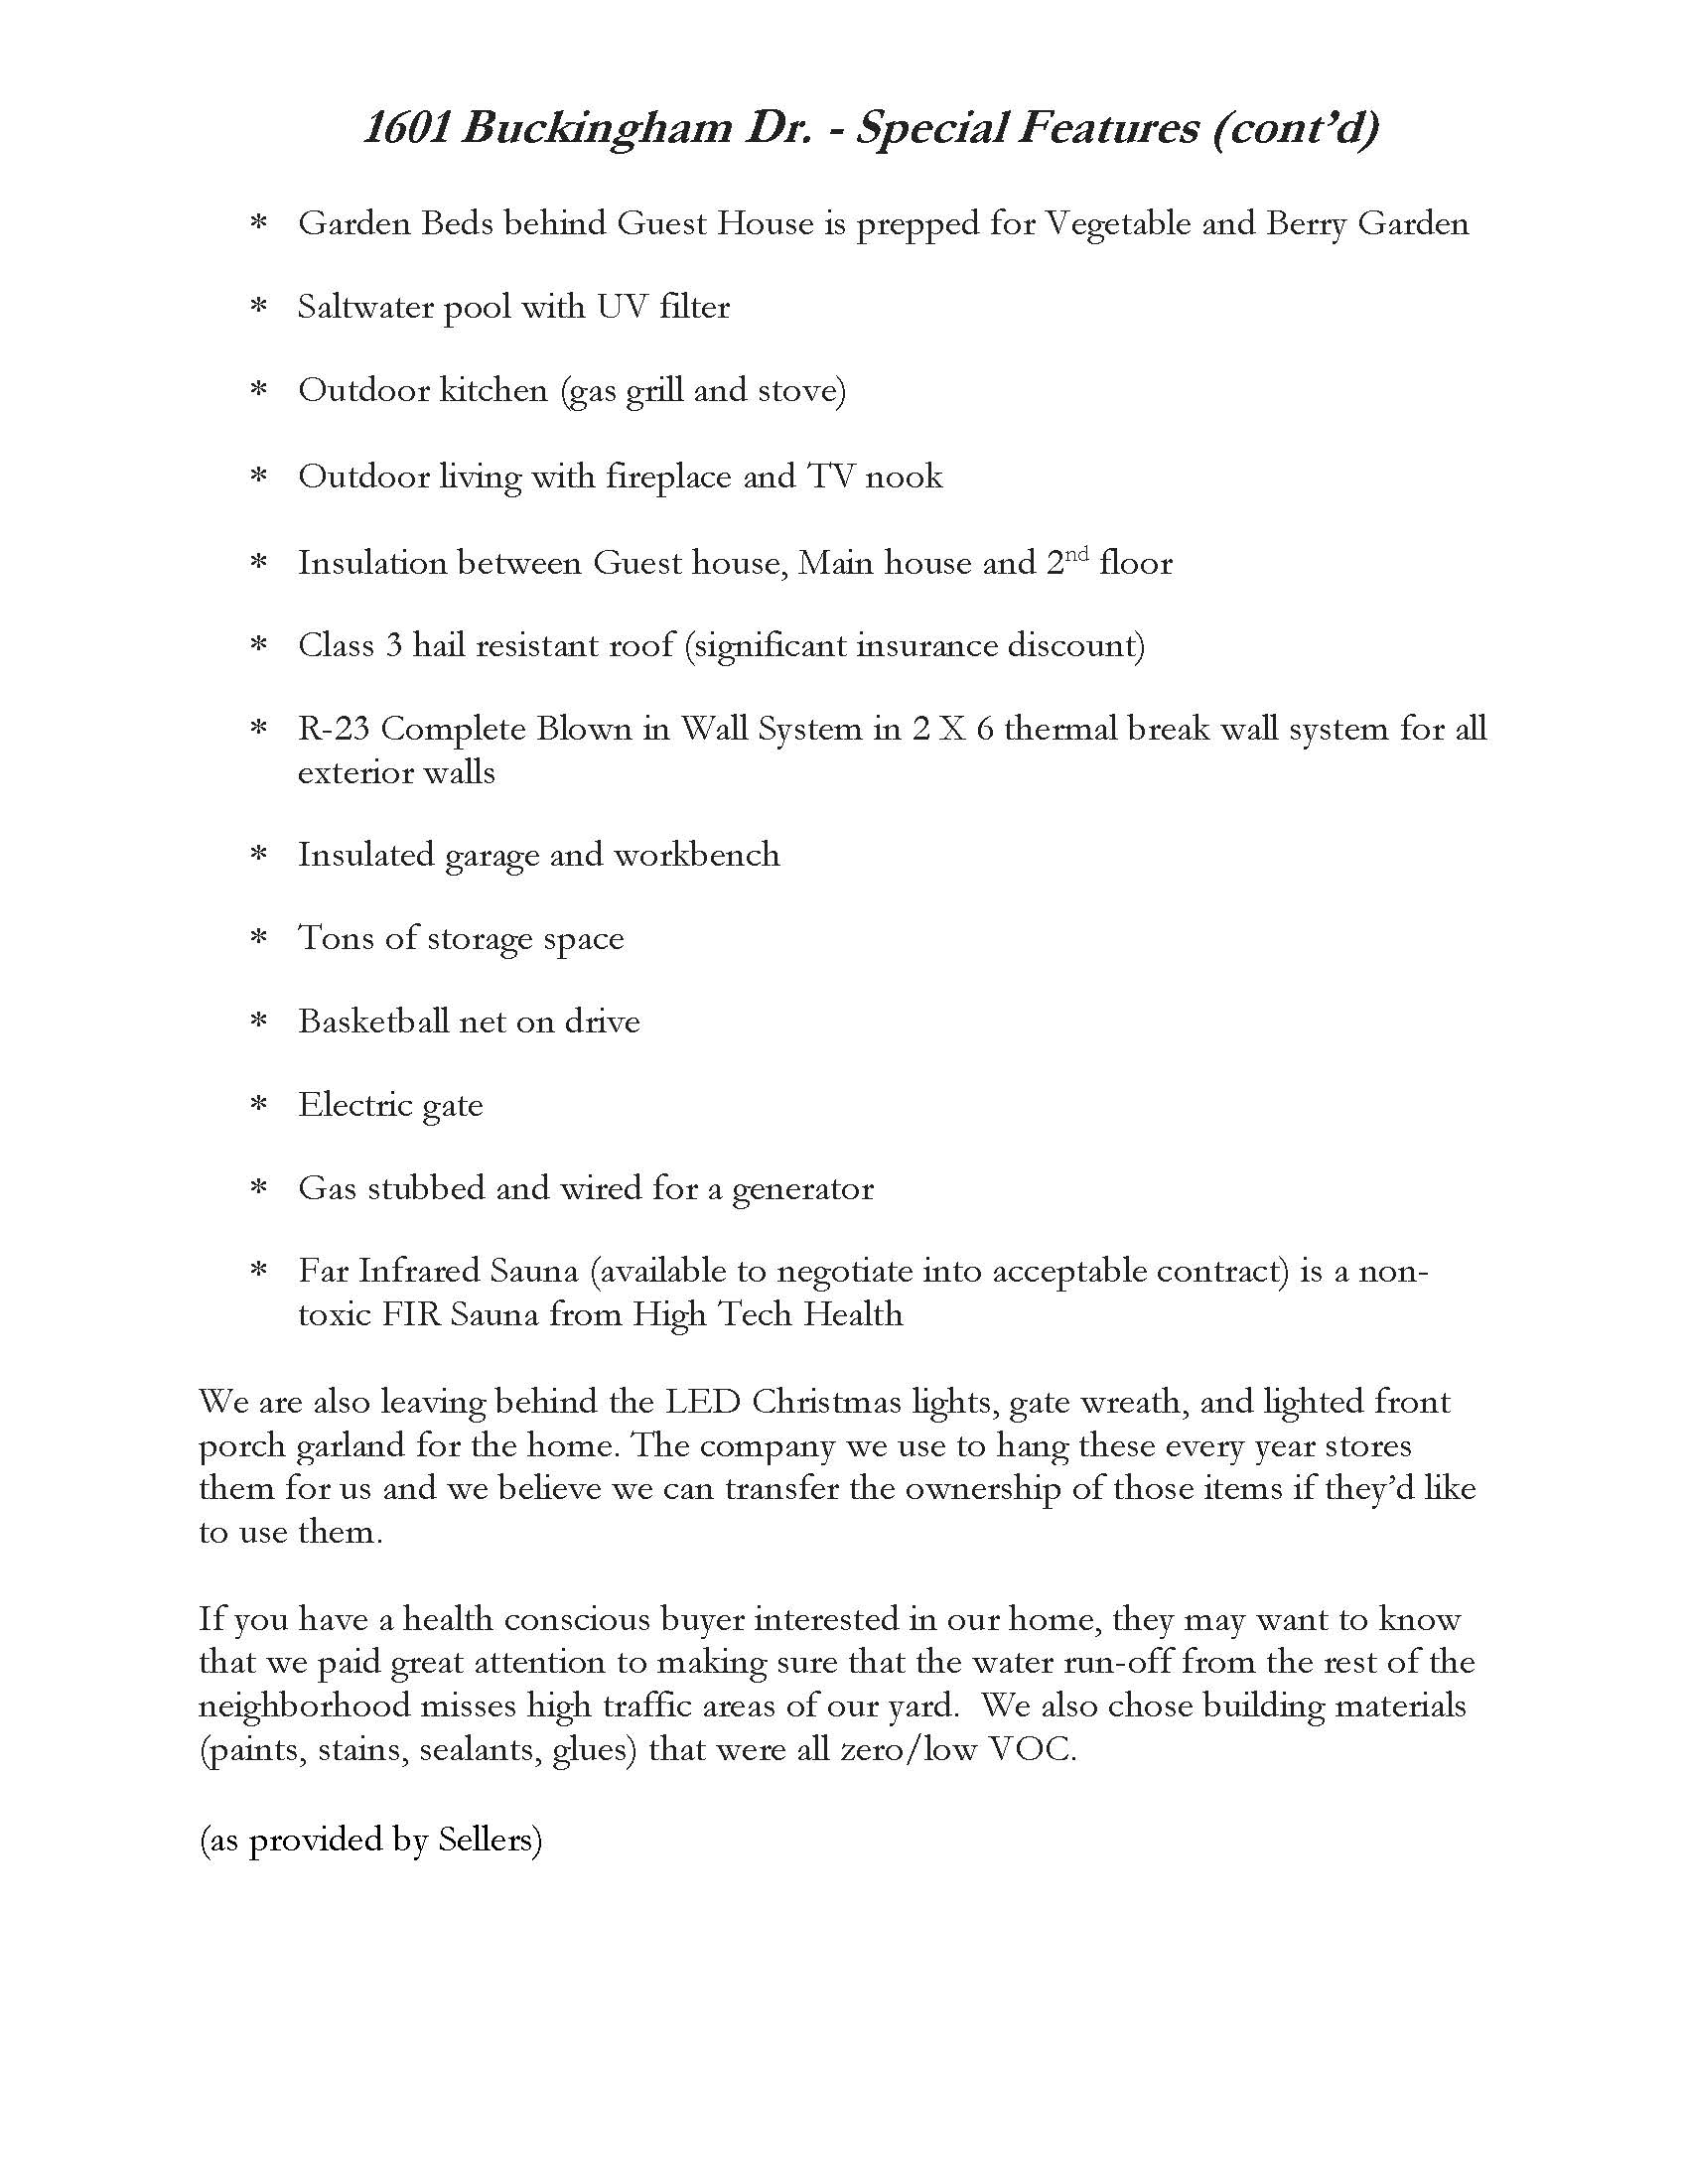 Special Features List - Buckingham Dr. Page 2